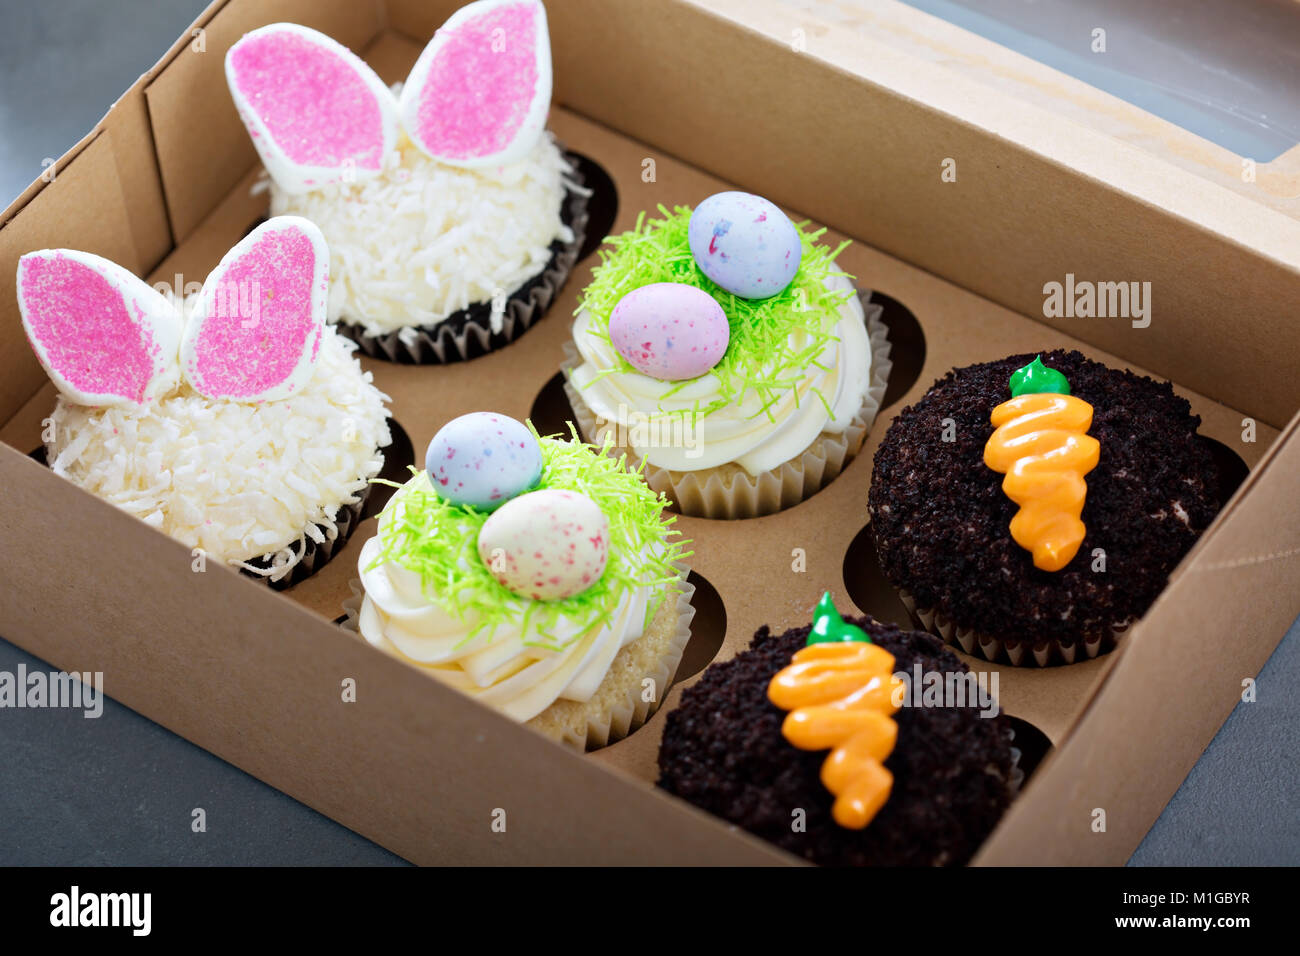 Assortment of easter cupcakes in a box with bunny ears and candy eggs - Stock Image